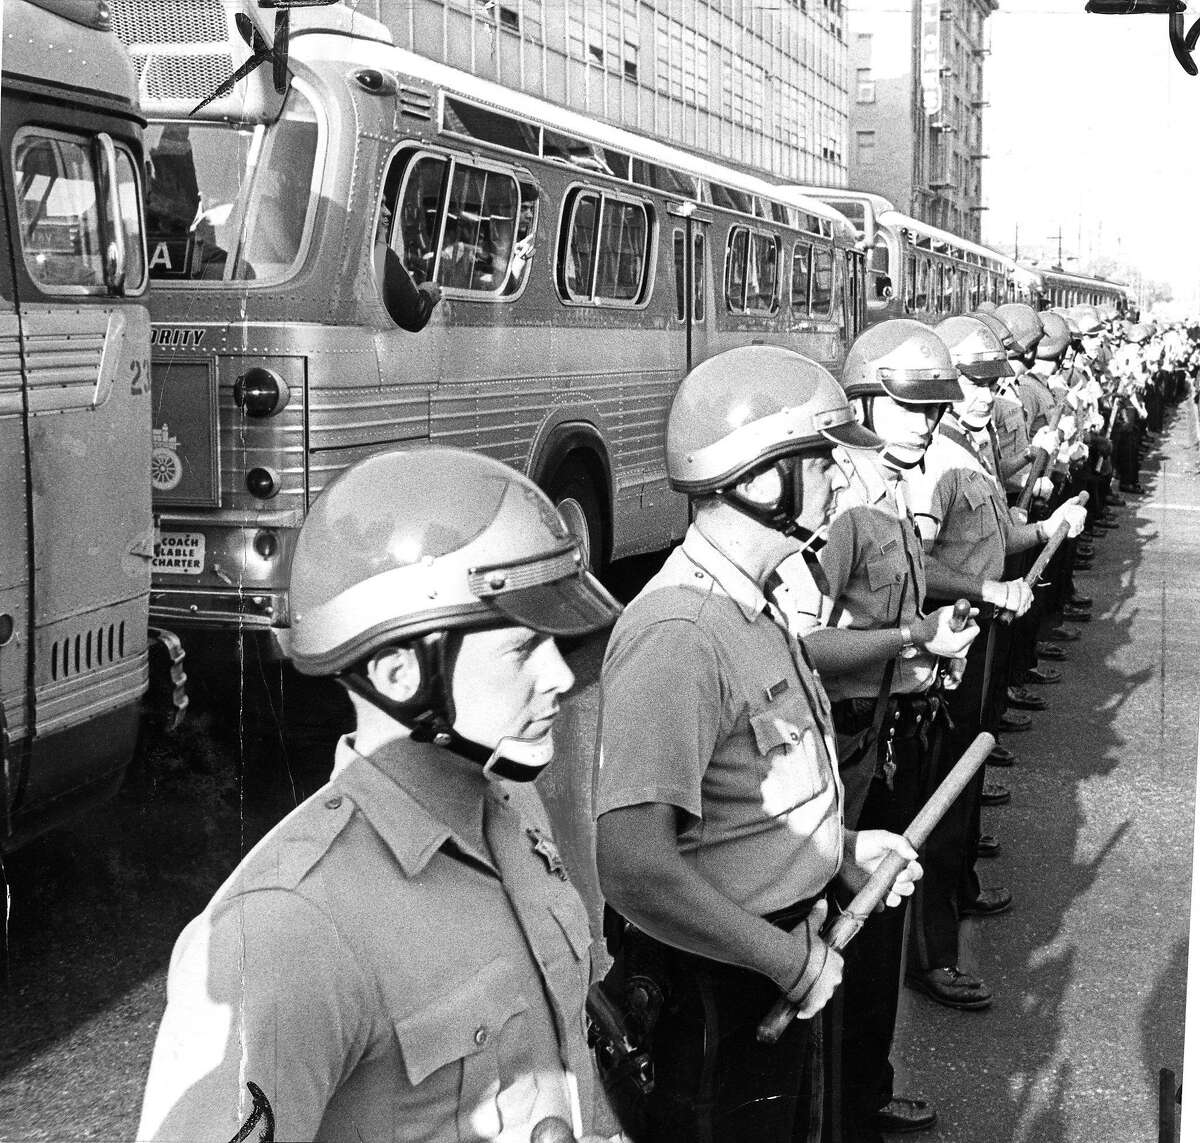 Police are escorting buses of inductees through anti-war demonstrators who are blocking access to the Oakland Induction Center, October 16, 1967 Draft and Vietnam War protesters Phot ran 10/17/1967, p. 1